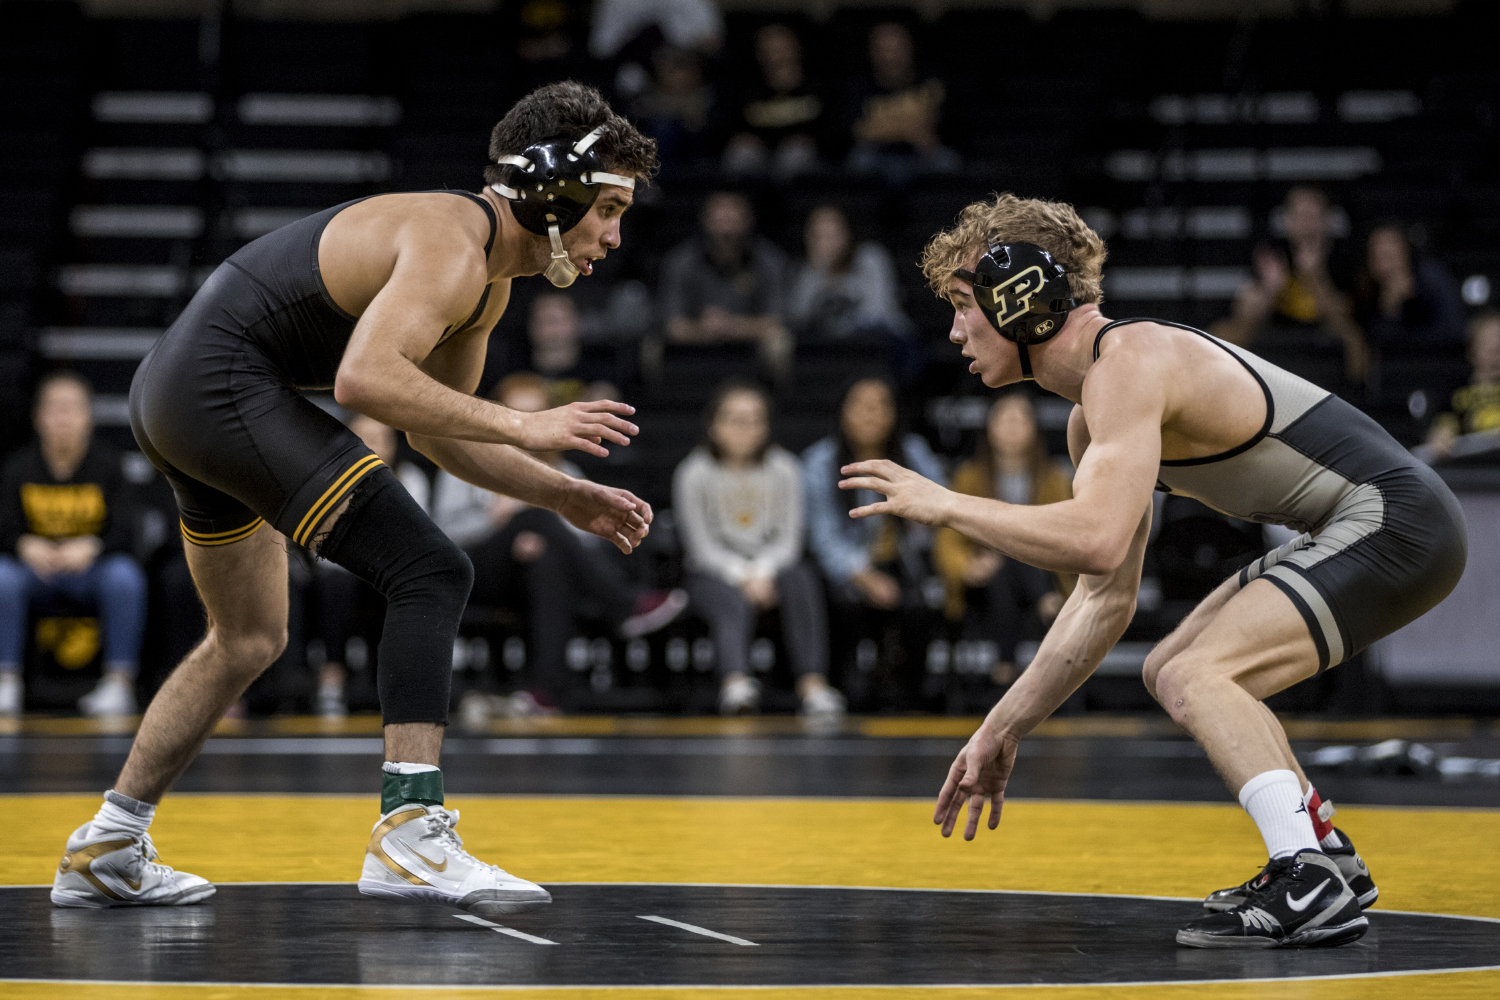 Iowa's Perez Perez and Purdue's Devin Schroder wrestle during Iowa's dual meet against Purdue at Carver-Hawkeye Arena in Iowa City on Saturday, November 24, 2018. Schroder defeated Perez by 4-2. The Hawkeyes defeated the Boilermakers 26-9.